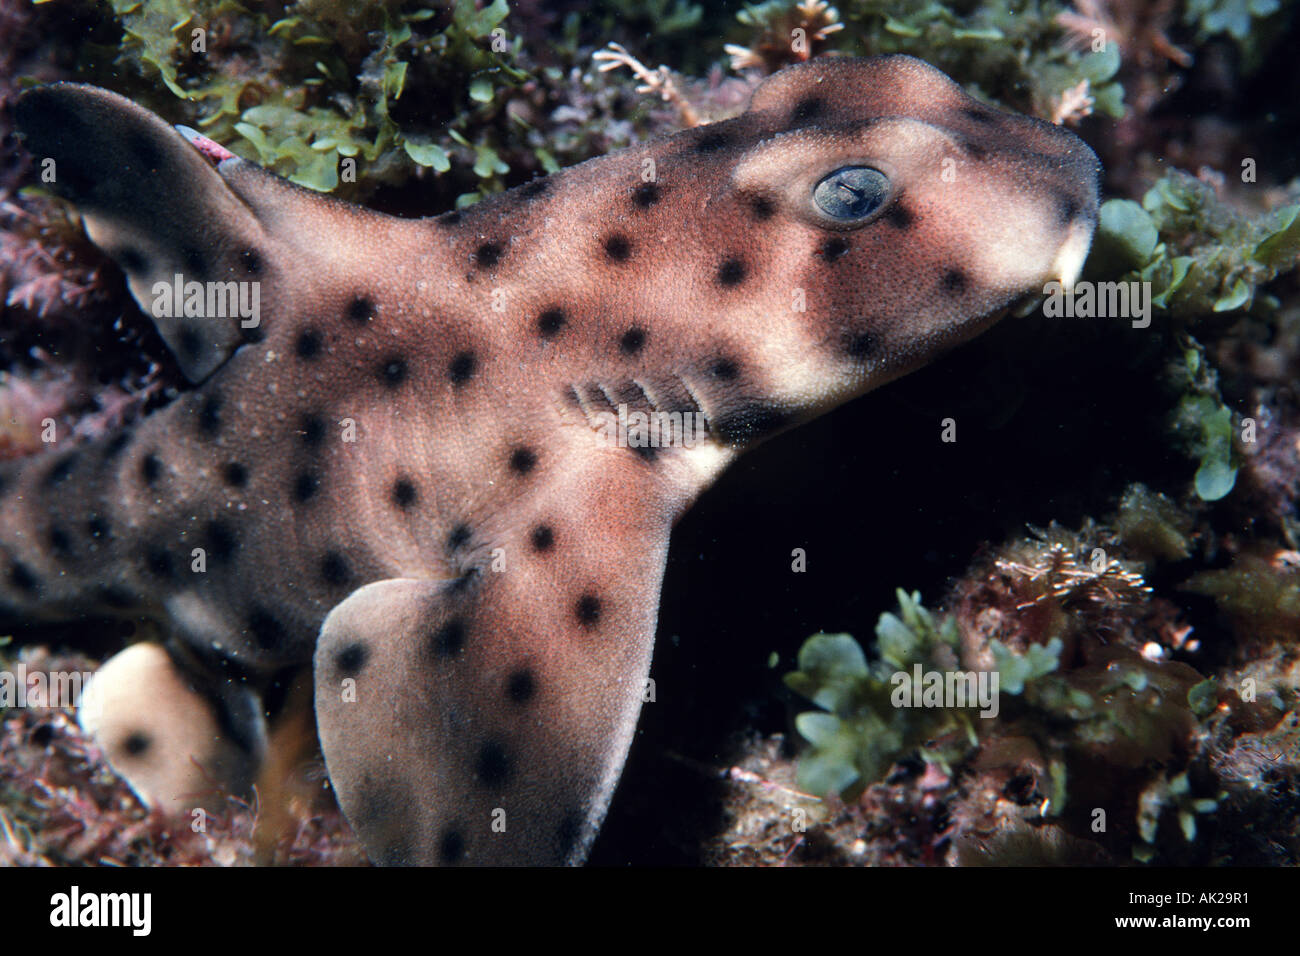 Horn shark Heterodontus francisci rests during the day in crevices and is active at night It is one of the few species of sharks that lays an egg California Pacific Ocean - Stock Image